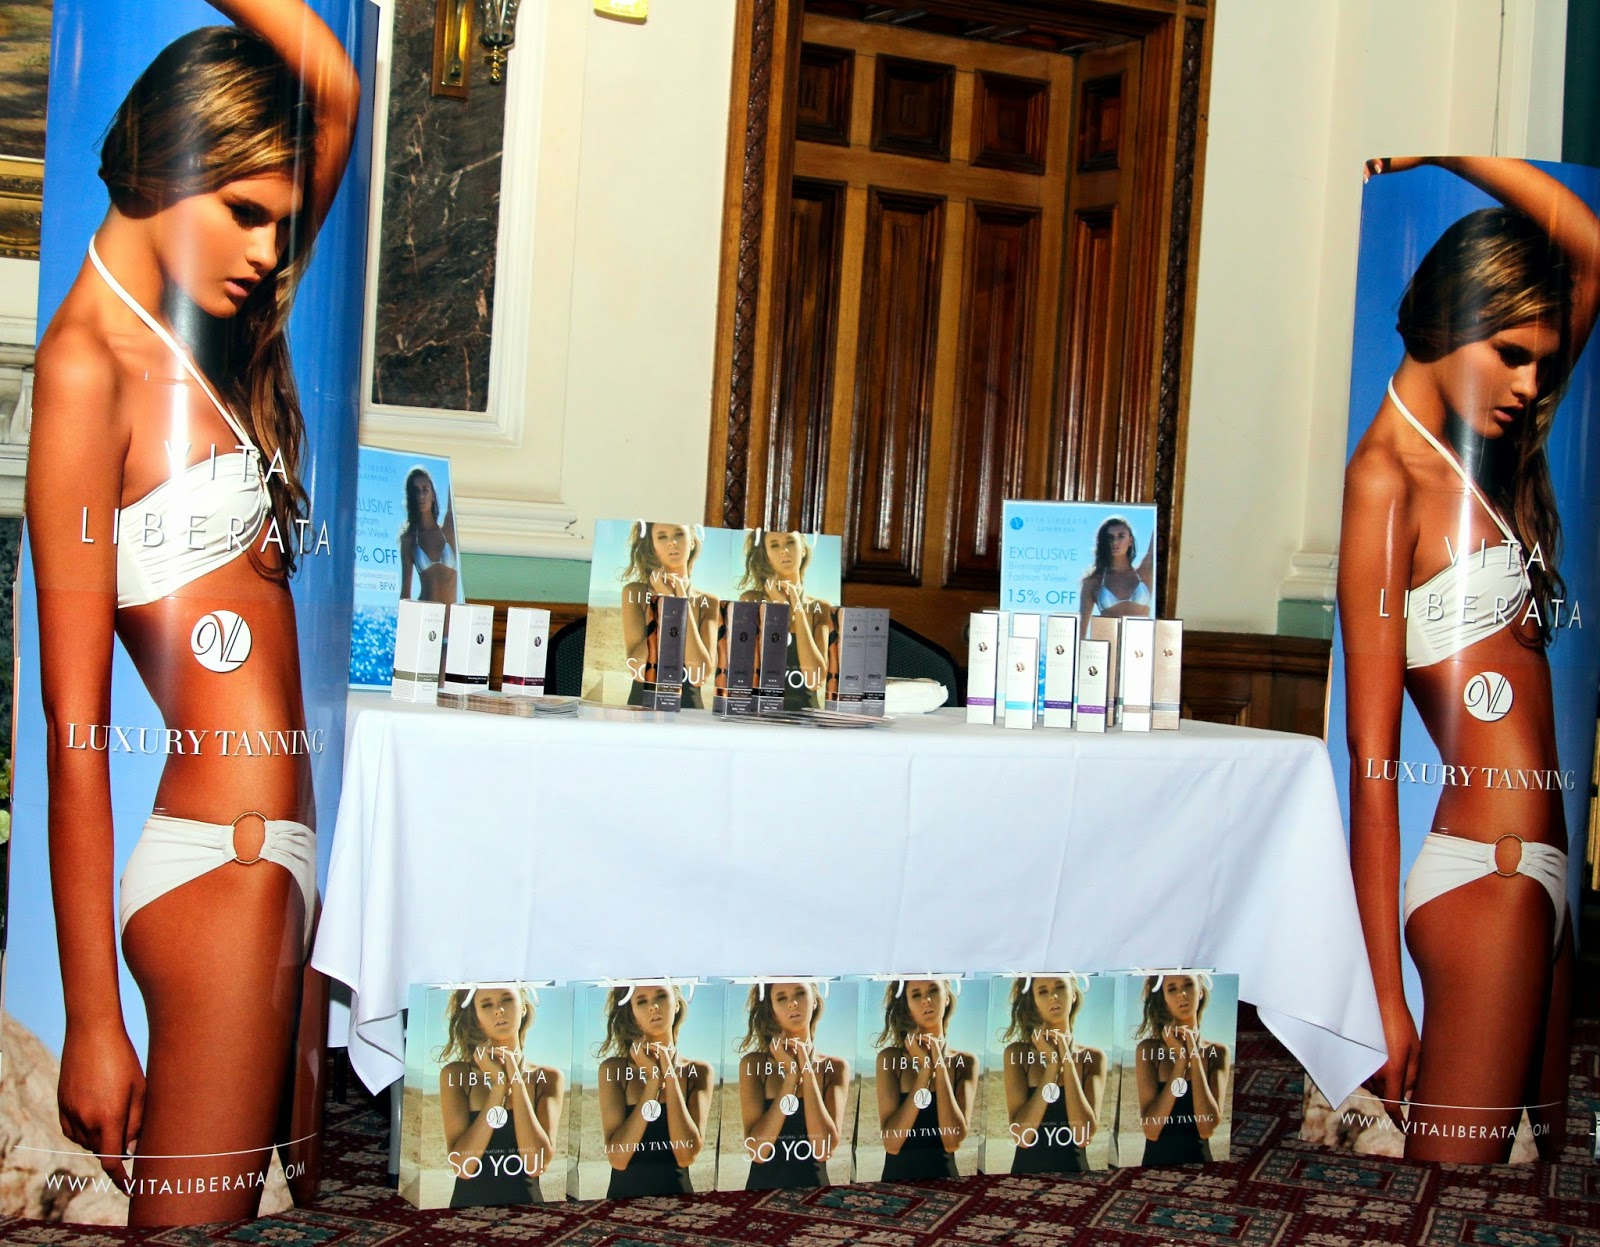 Vita Liberata Luxury Tan at Birmingham Fashion Week